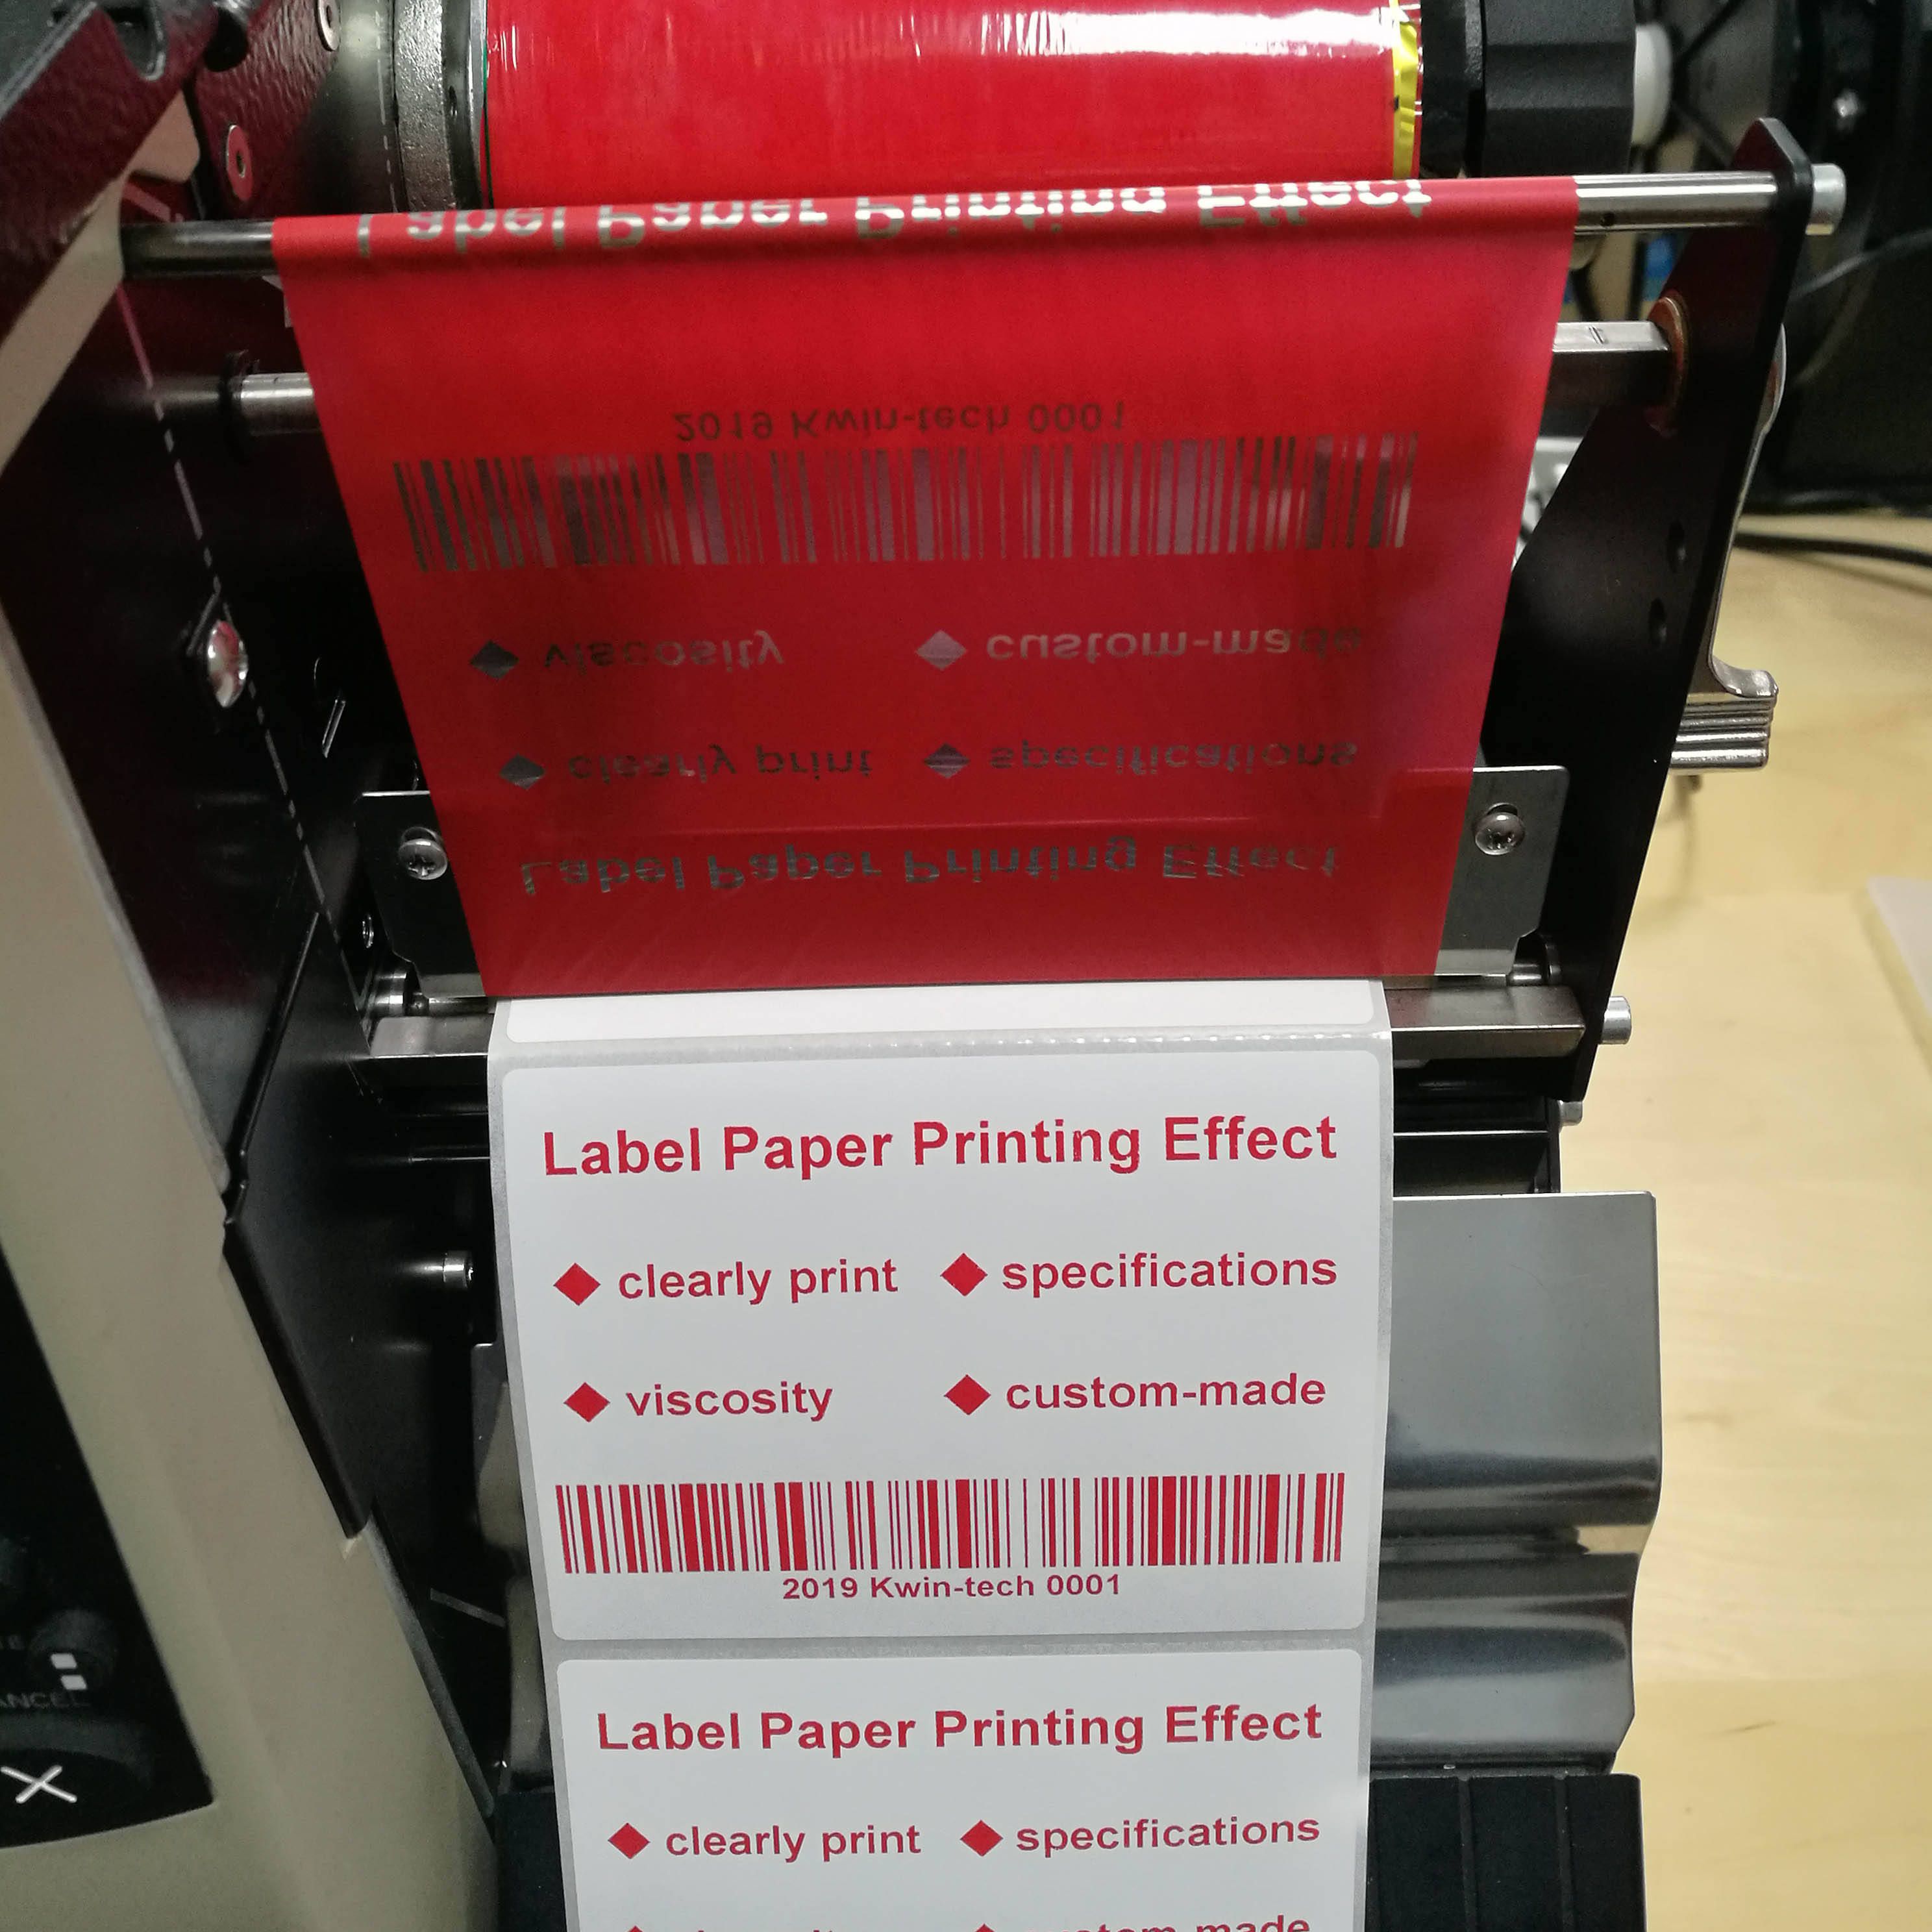 1 Inch Label Barcode Printer Verbruiksartikelen Zebra Printer 110mm Thermische Transfer Rode Hars Lint